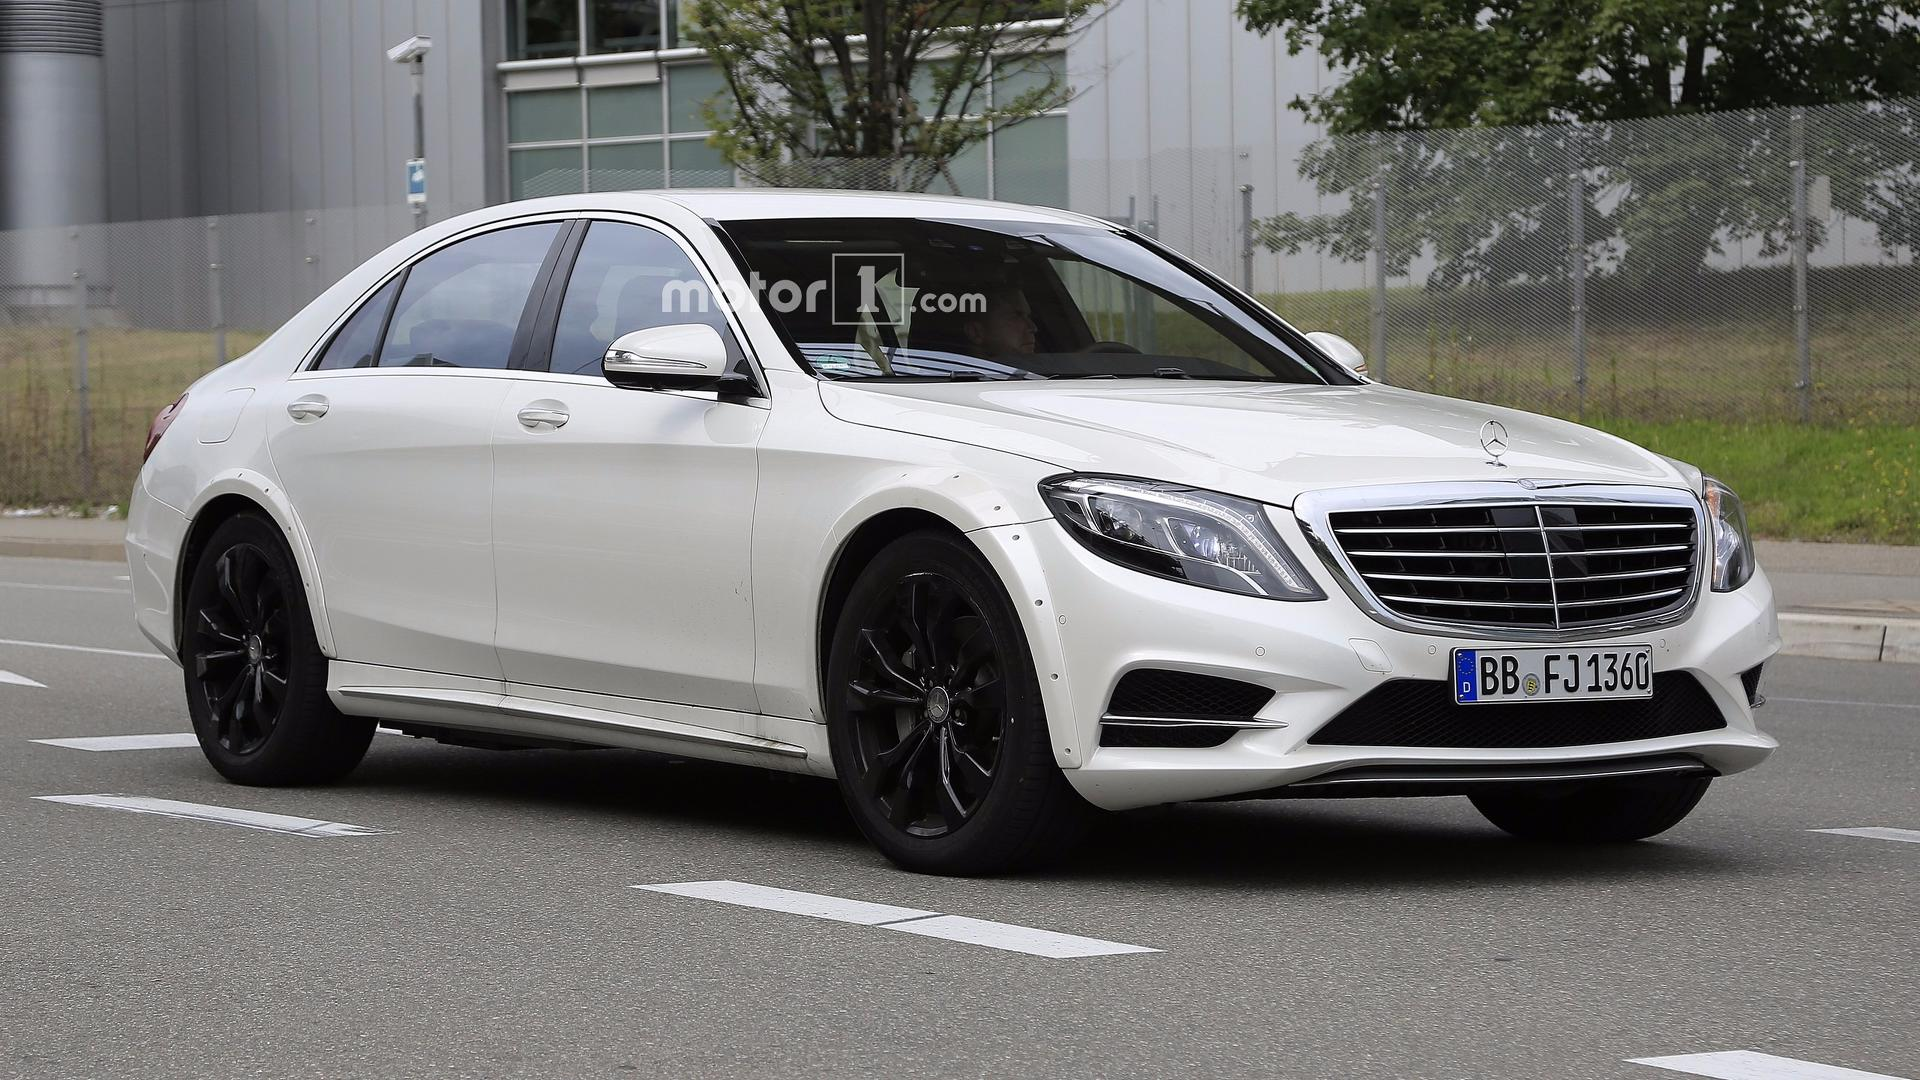 S Class Coupe >> 2021 Mercedes-Benz S-Class Test Mule Spotted